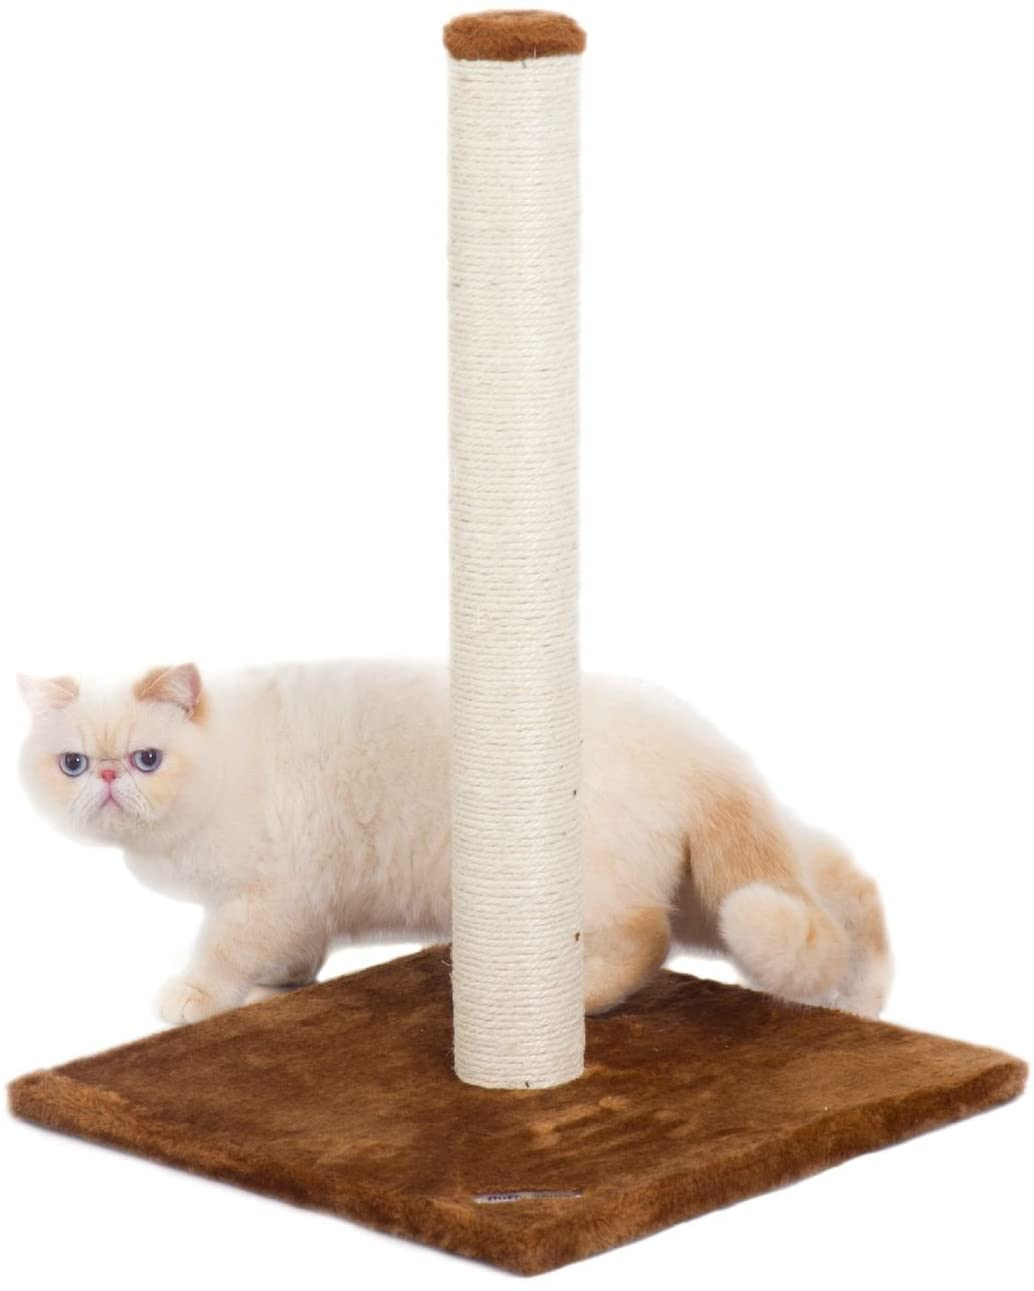 Fluffy Paws Cat Scratching Post, [25 x 16 x 16] Durable Sisal Wrapped, Ultimate Cat Kitten Scratcher, Keep Claws Active & Protect Your Furniture, Carpeted Based Play Area Brown